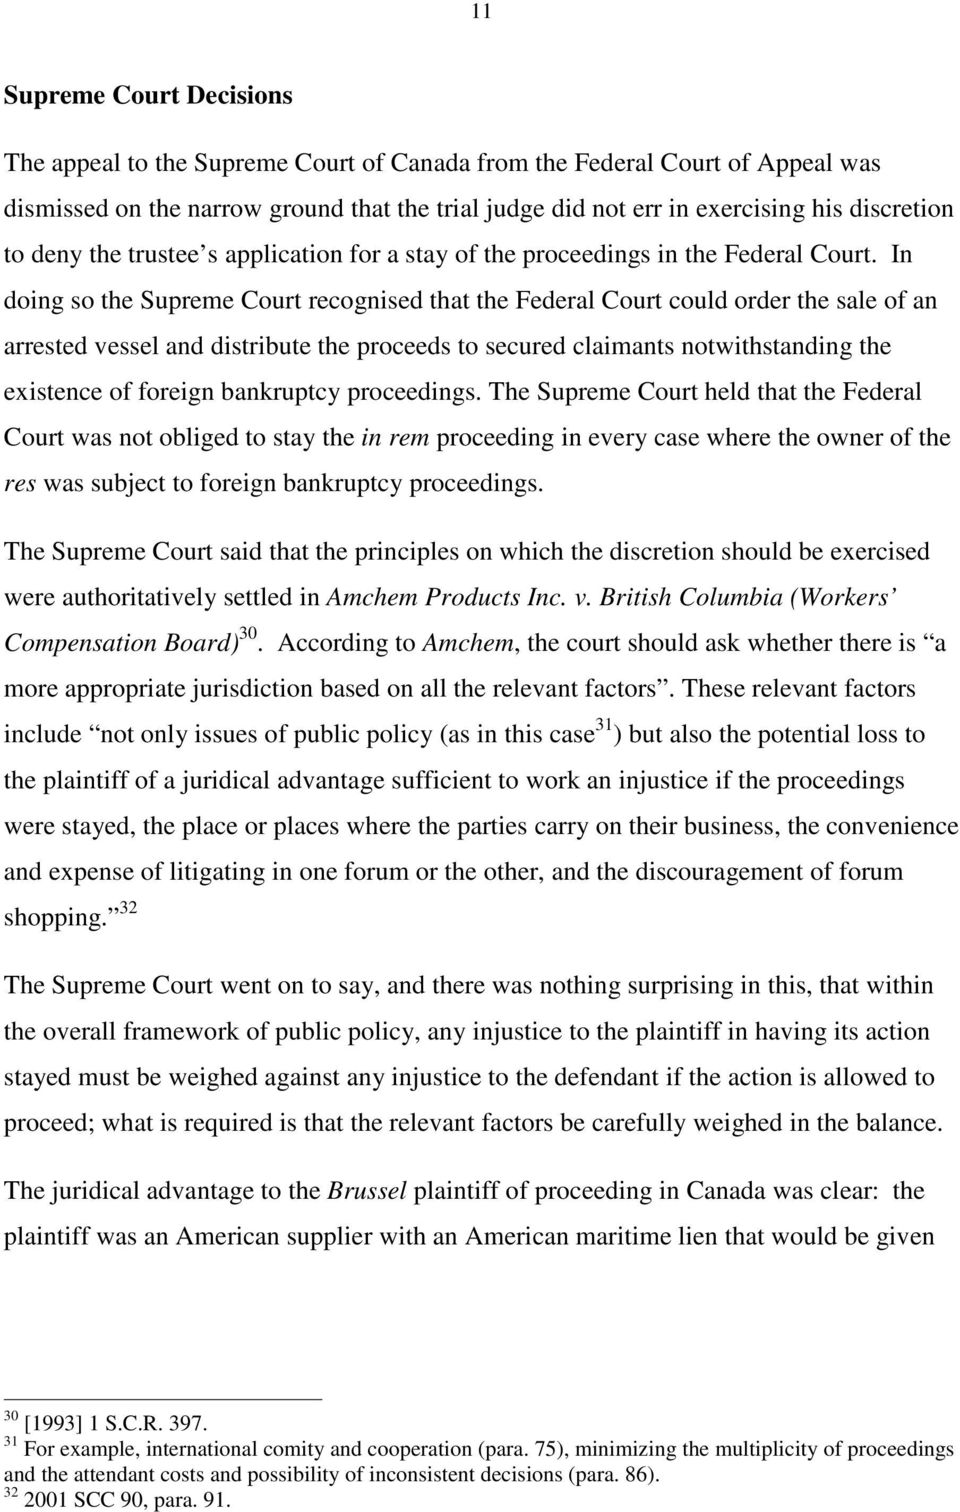 In doing so the Supreme Court recognised that the Federal Court could order the sale of an arrested vessel and distribute the proceeds to secured claimants notwithstanding the existence of foreign